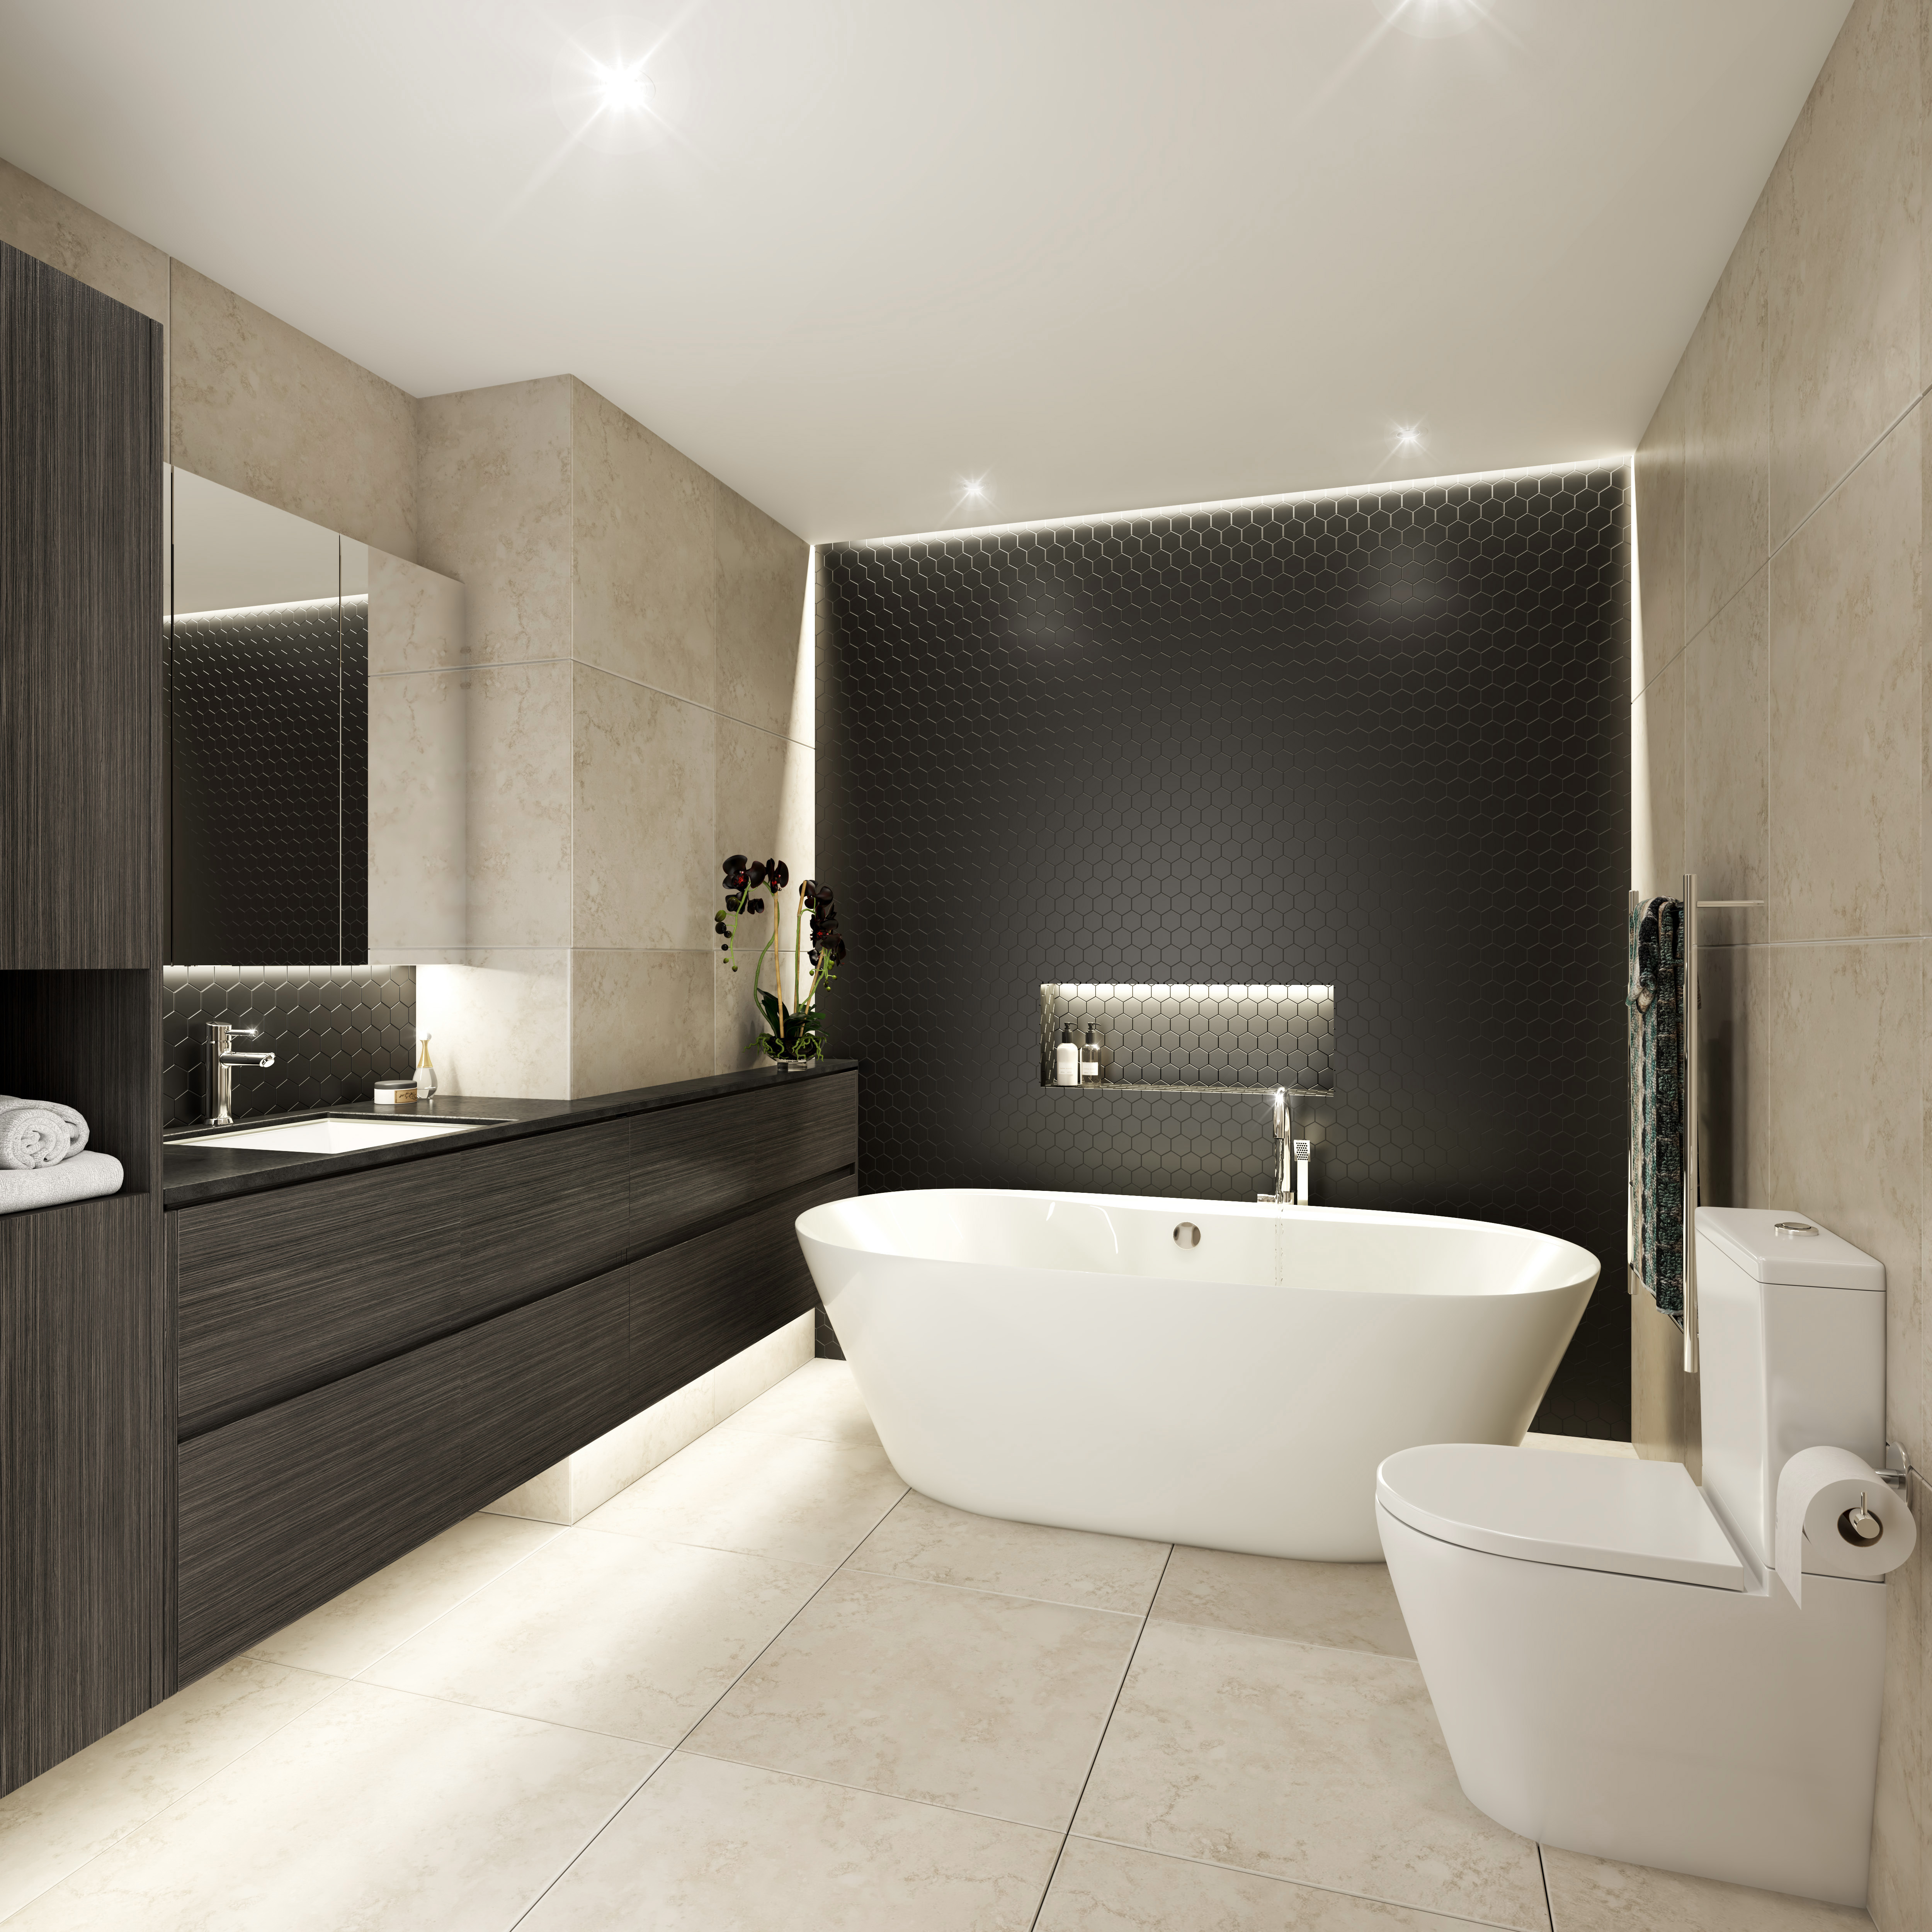 TheVictorBbay_Int_Penthouse_Bathroom_Final_02